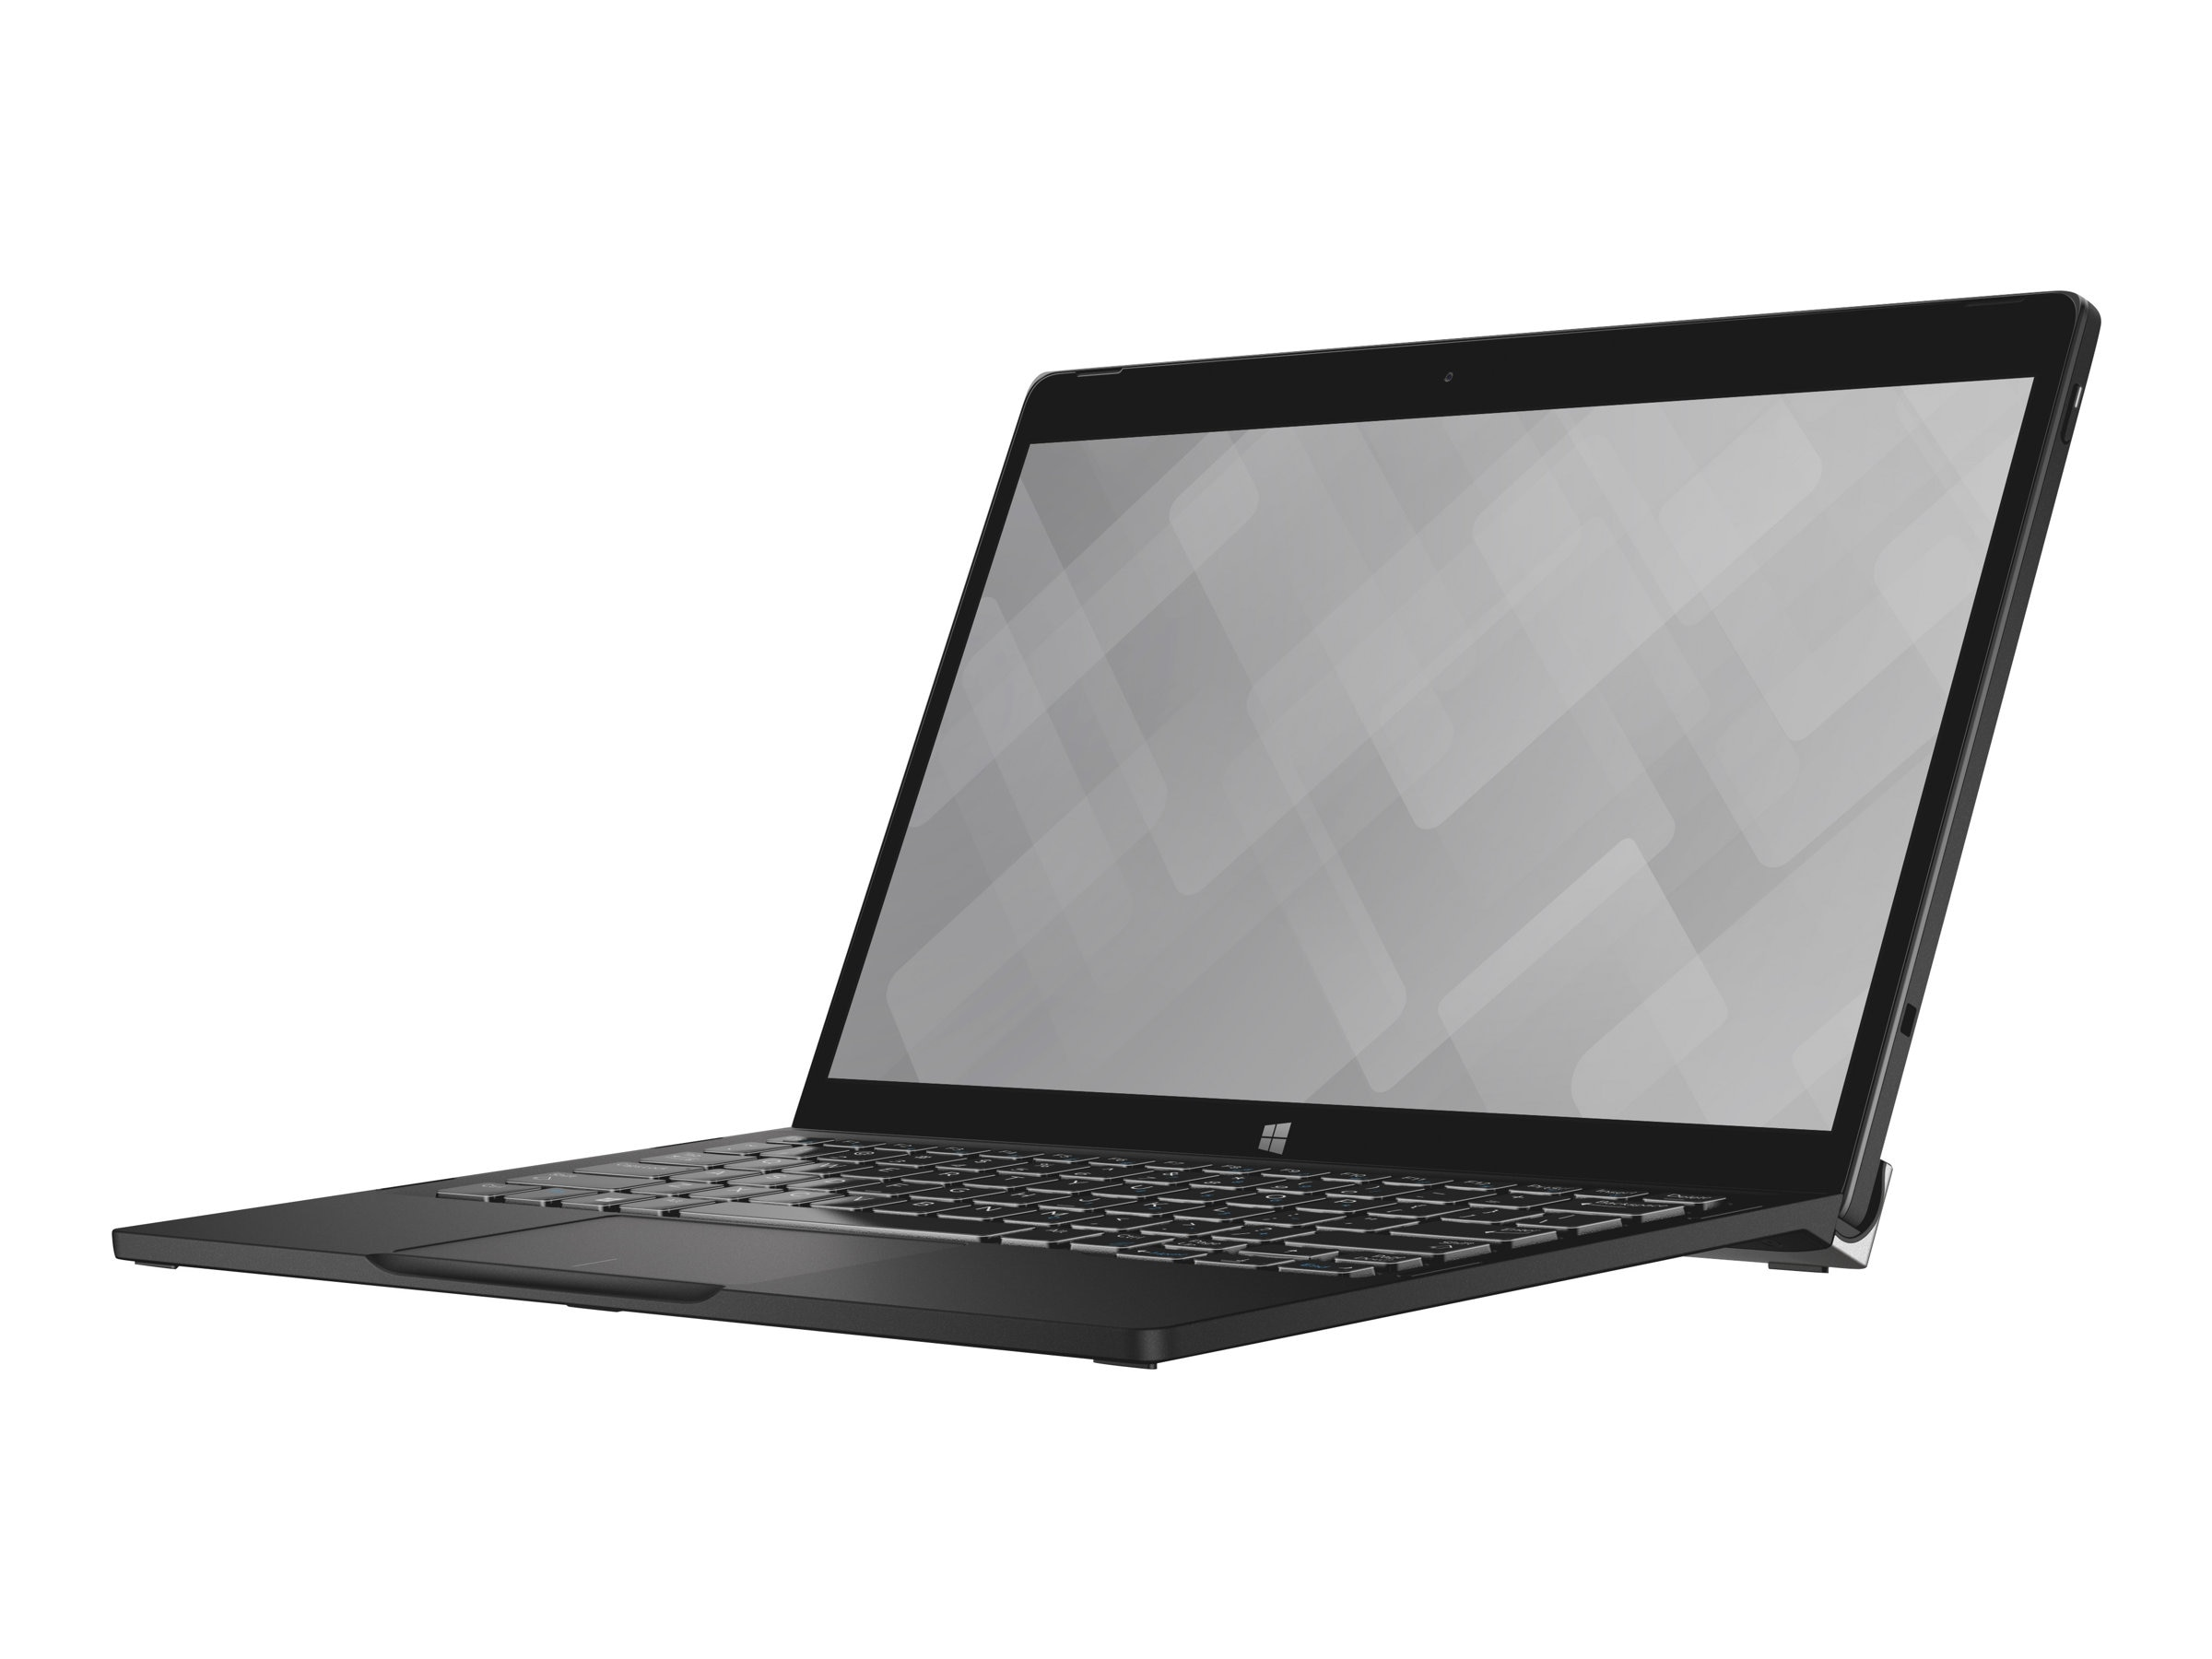 Dell Latitude 7275 1.1GHz Core m5 12.5in display